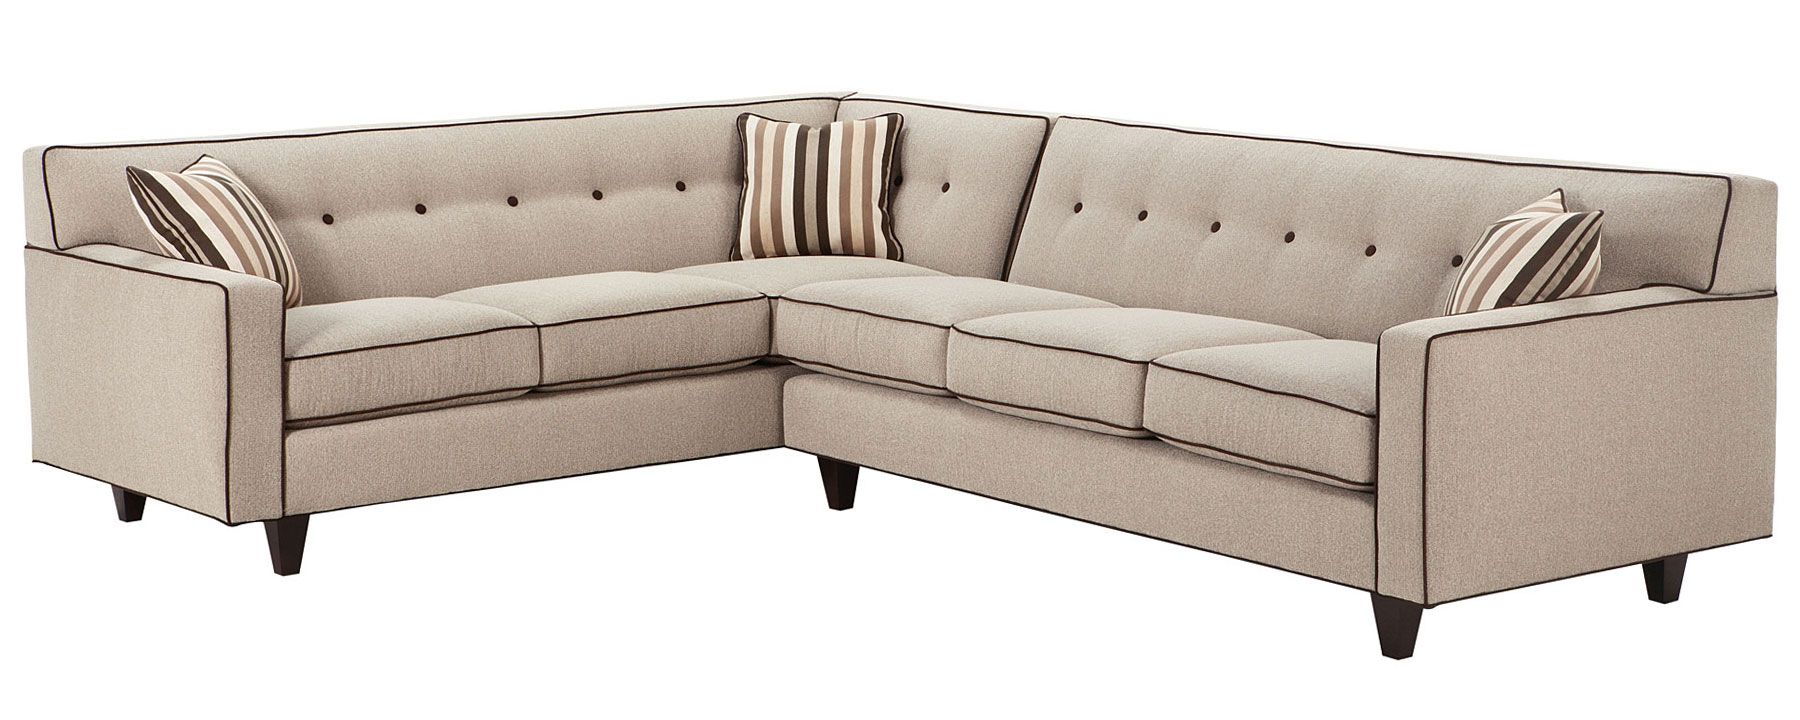 Mid century modern sectional sofa w button back club for Modern sectional sofas